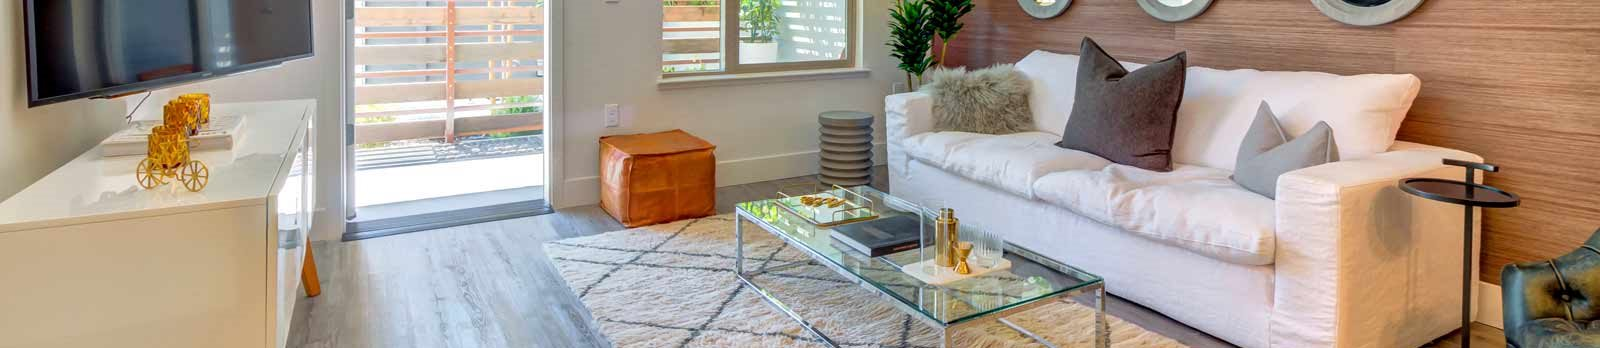 Luxurious Interiors at Elan Menlo Park, Menlo Park